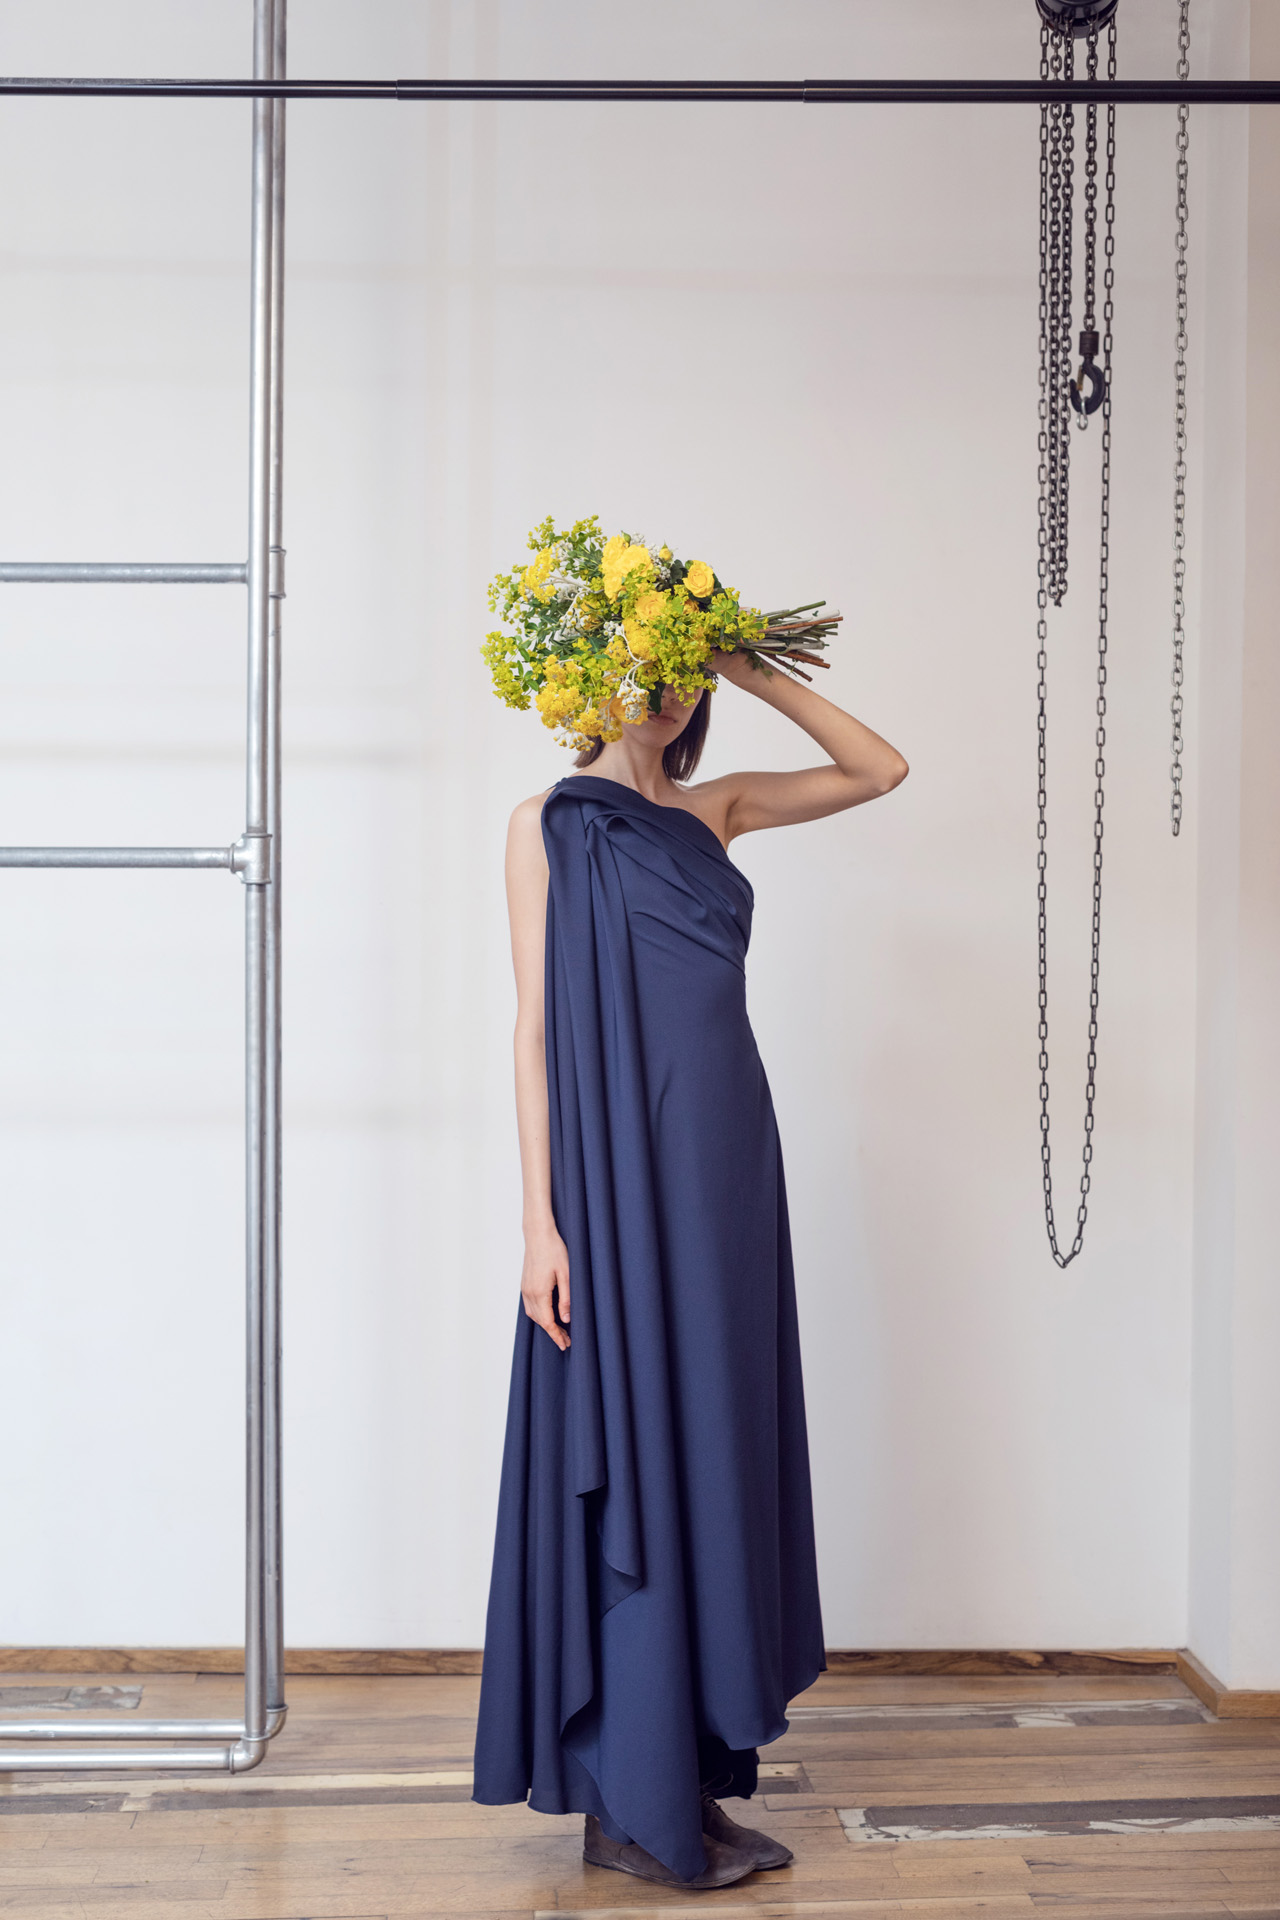 Lara Khoury | LK Stripped | Capsule 1-2019 | 16- Navy Blue Crepe Molded Drape Dress 1.jpg